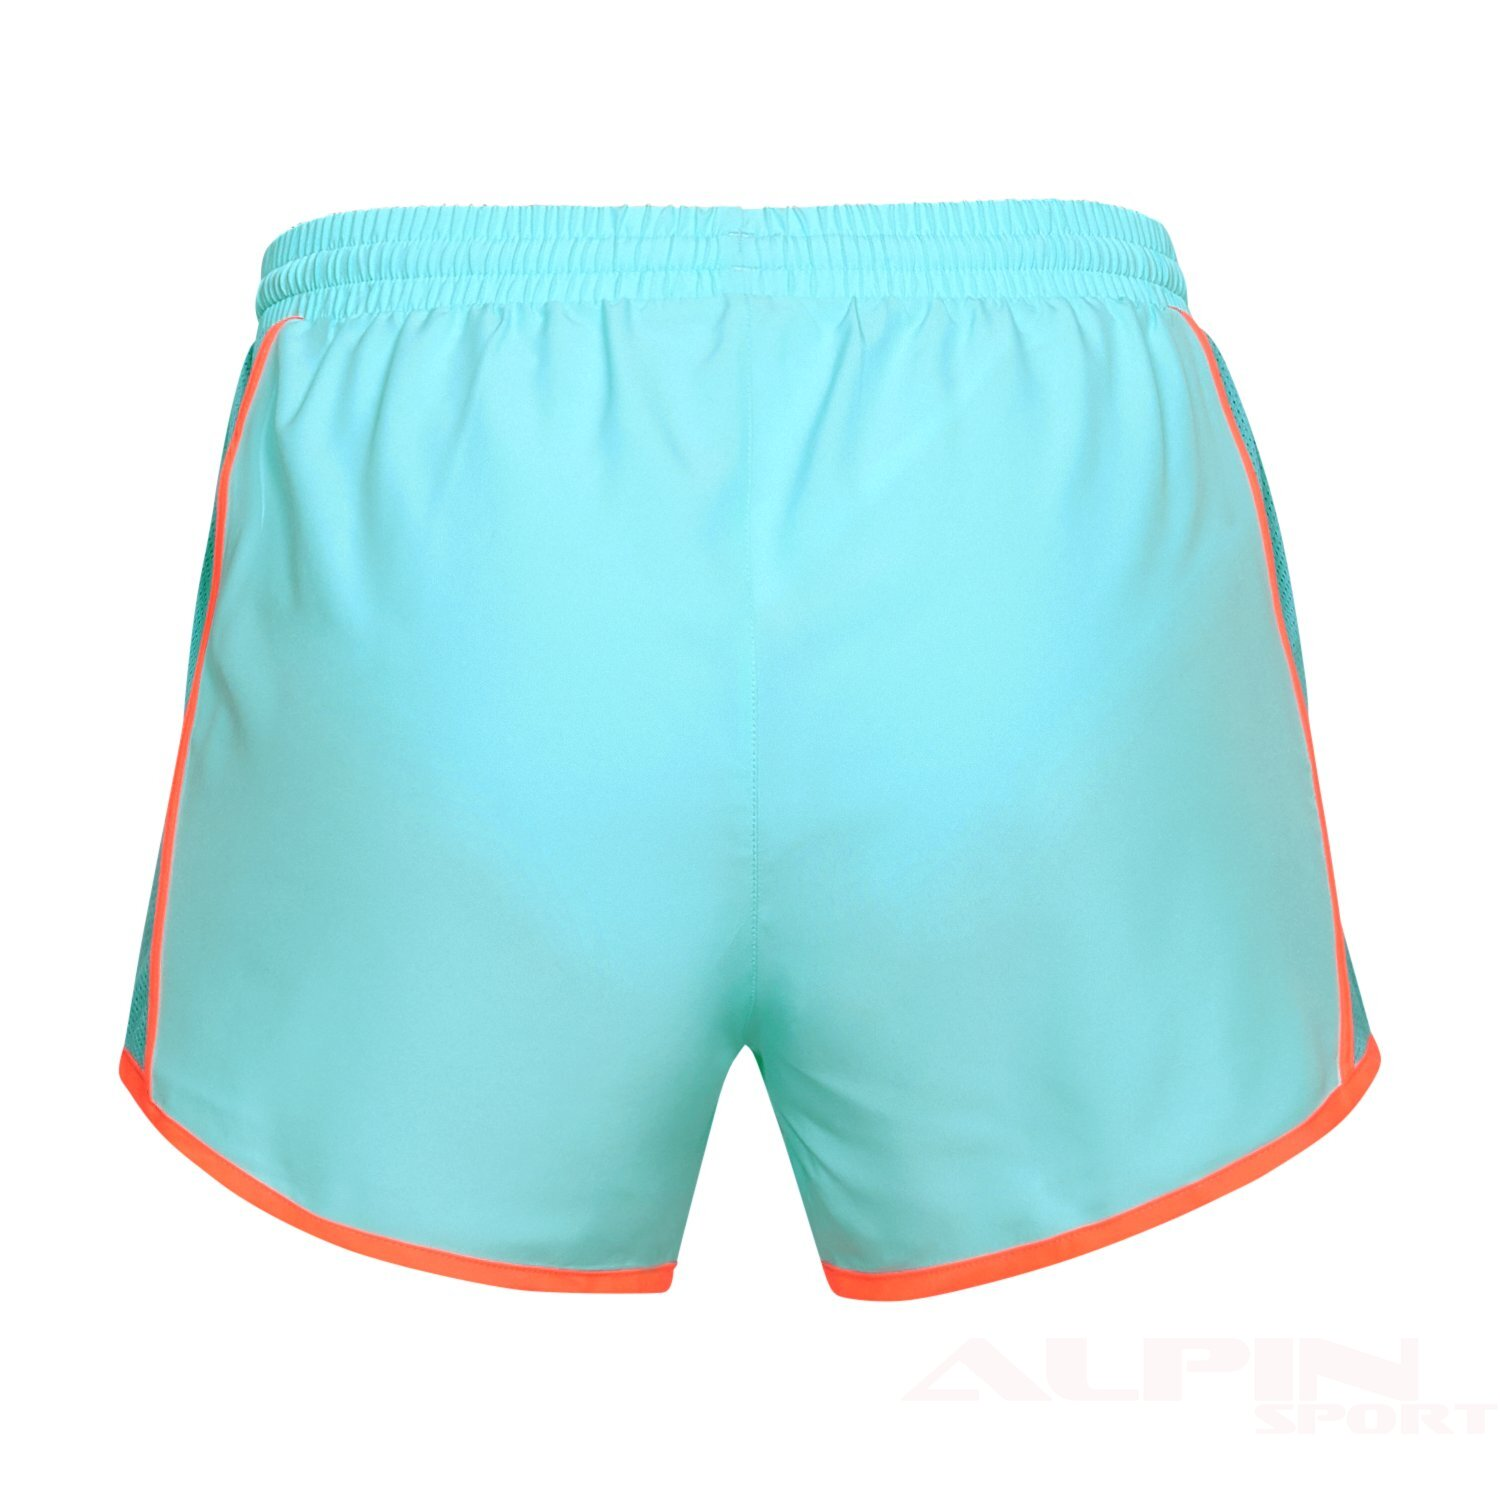 Spodenki UNDER ARMOUR 1297125 Fly pol_pl_FLY BY SHORT 5962_5